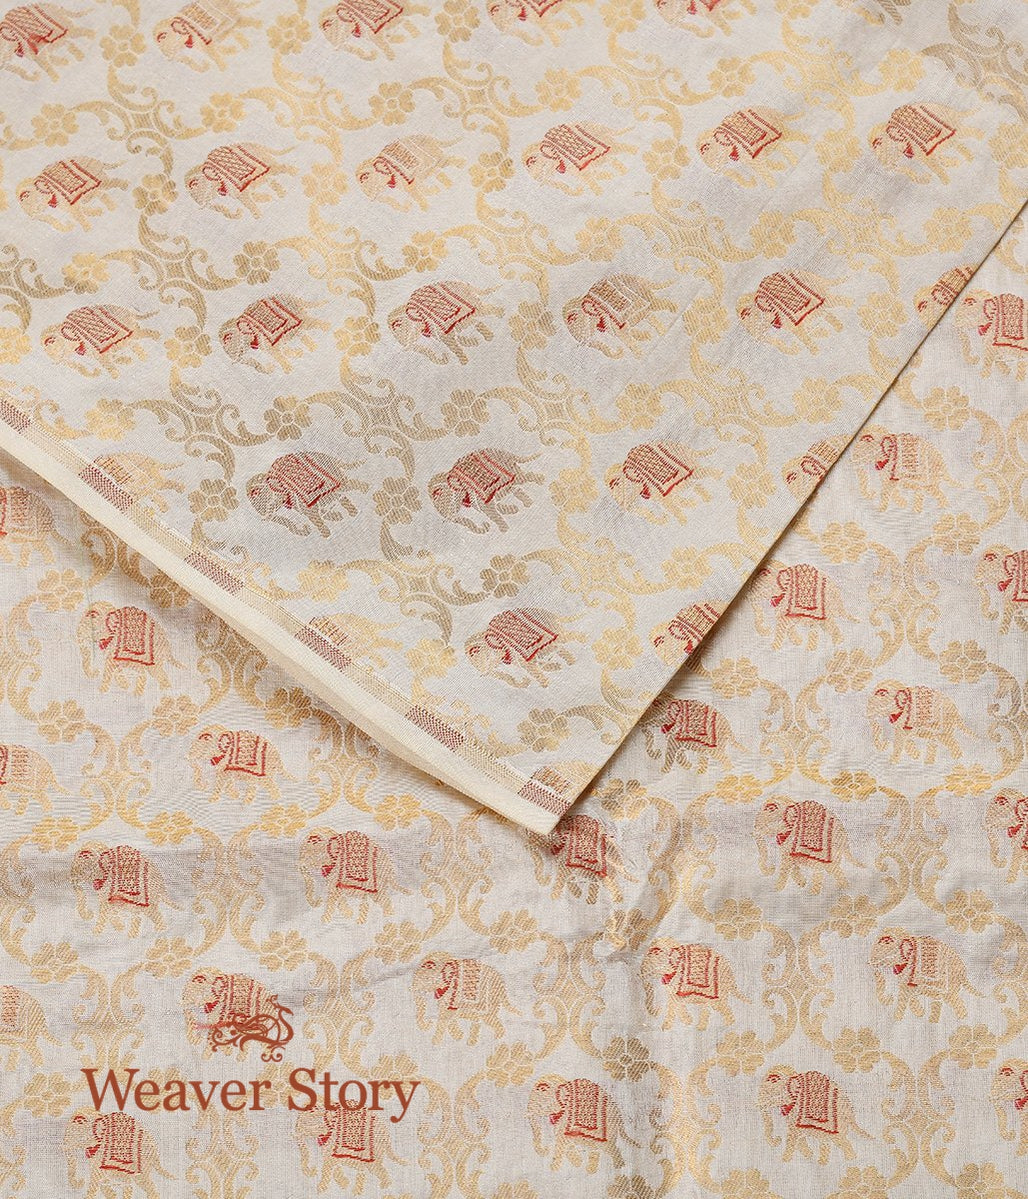 Handwoven Offwhite Banarasi SIlk Fabric with Small Elephant Motifs